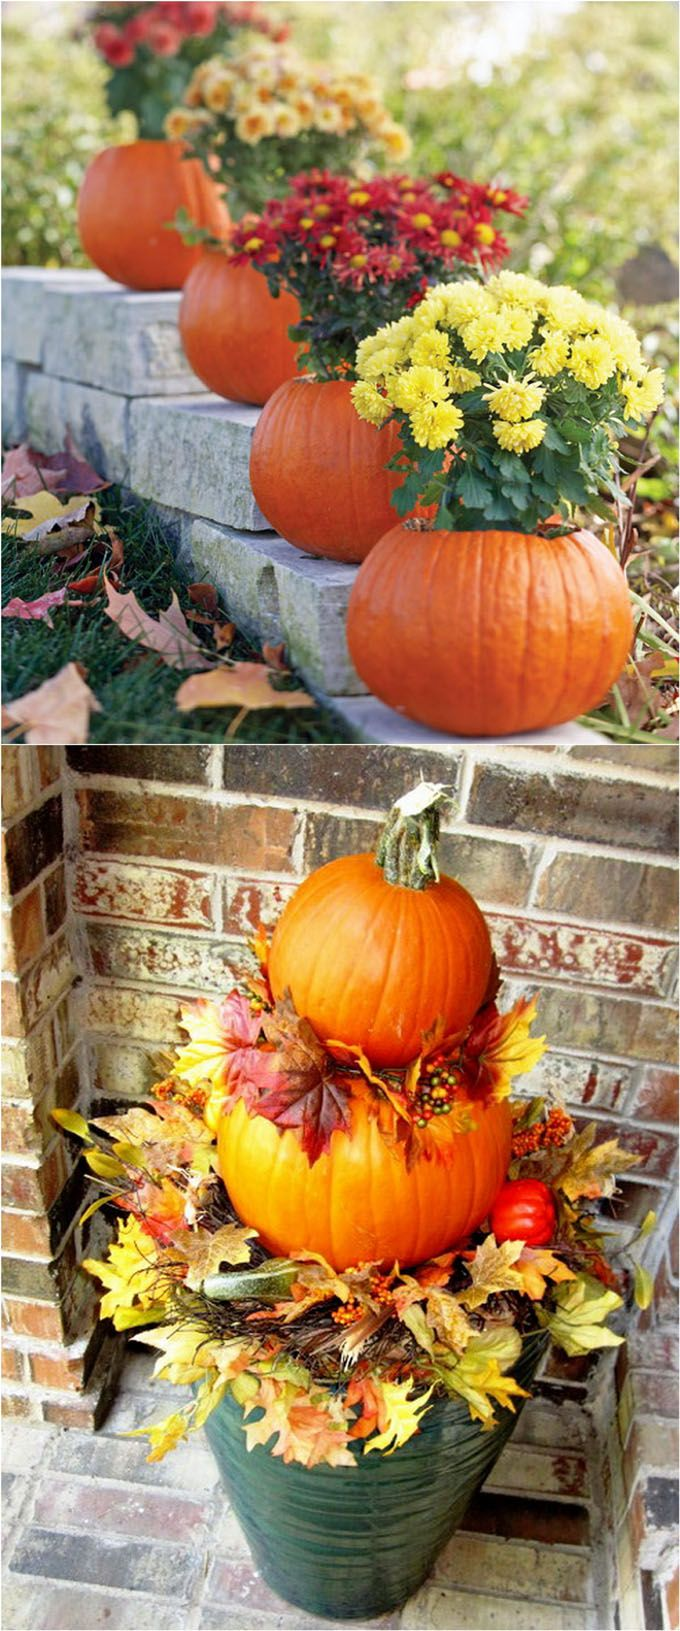 Best 25+ Outdoor fall decorations ideas on Pinterest